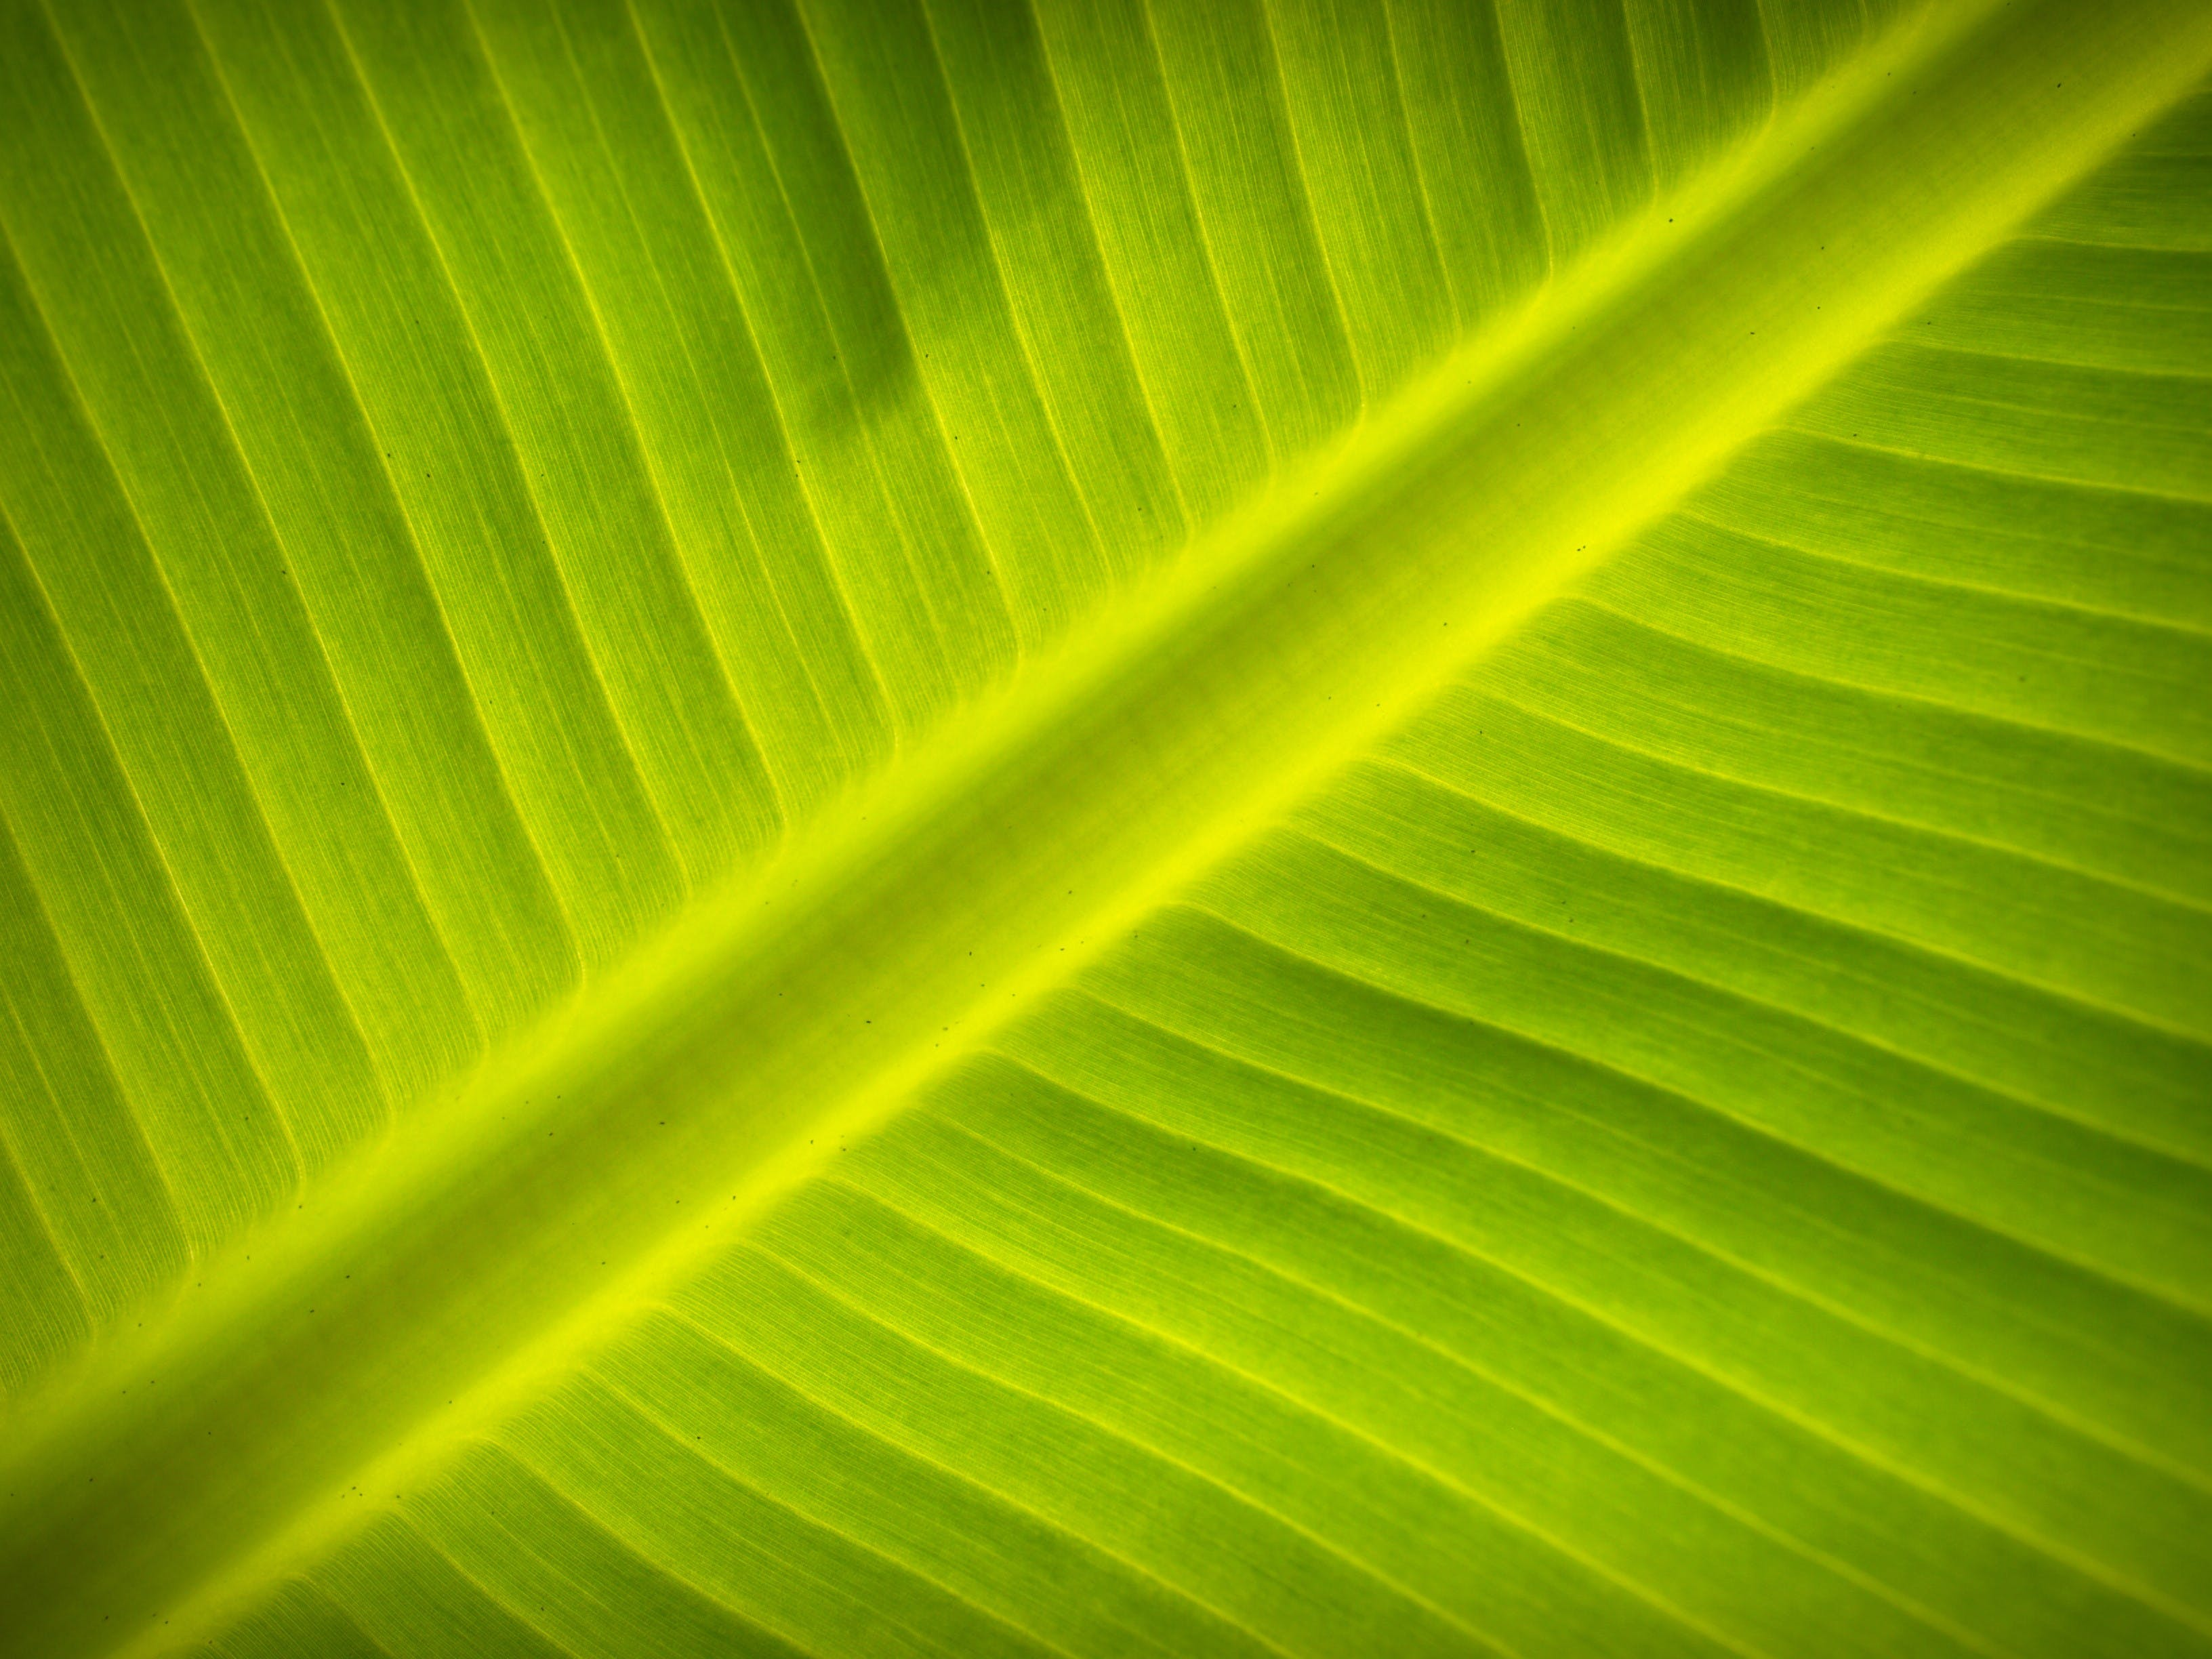 Free stock photo of pattern, leaf, green, close-up